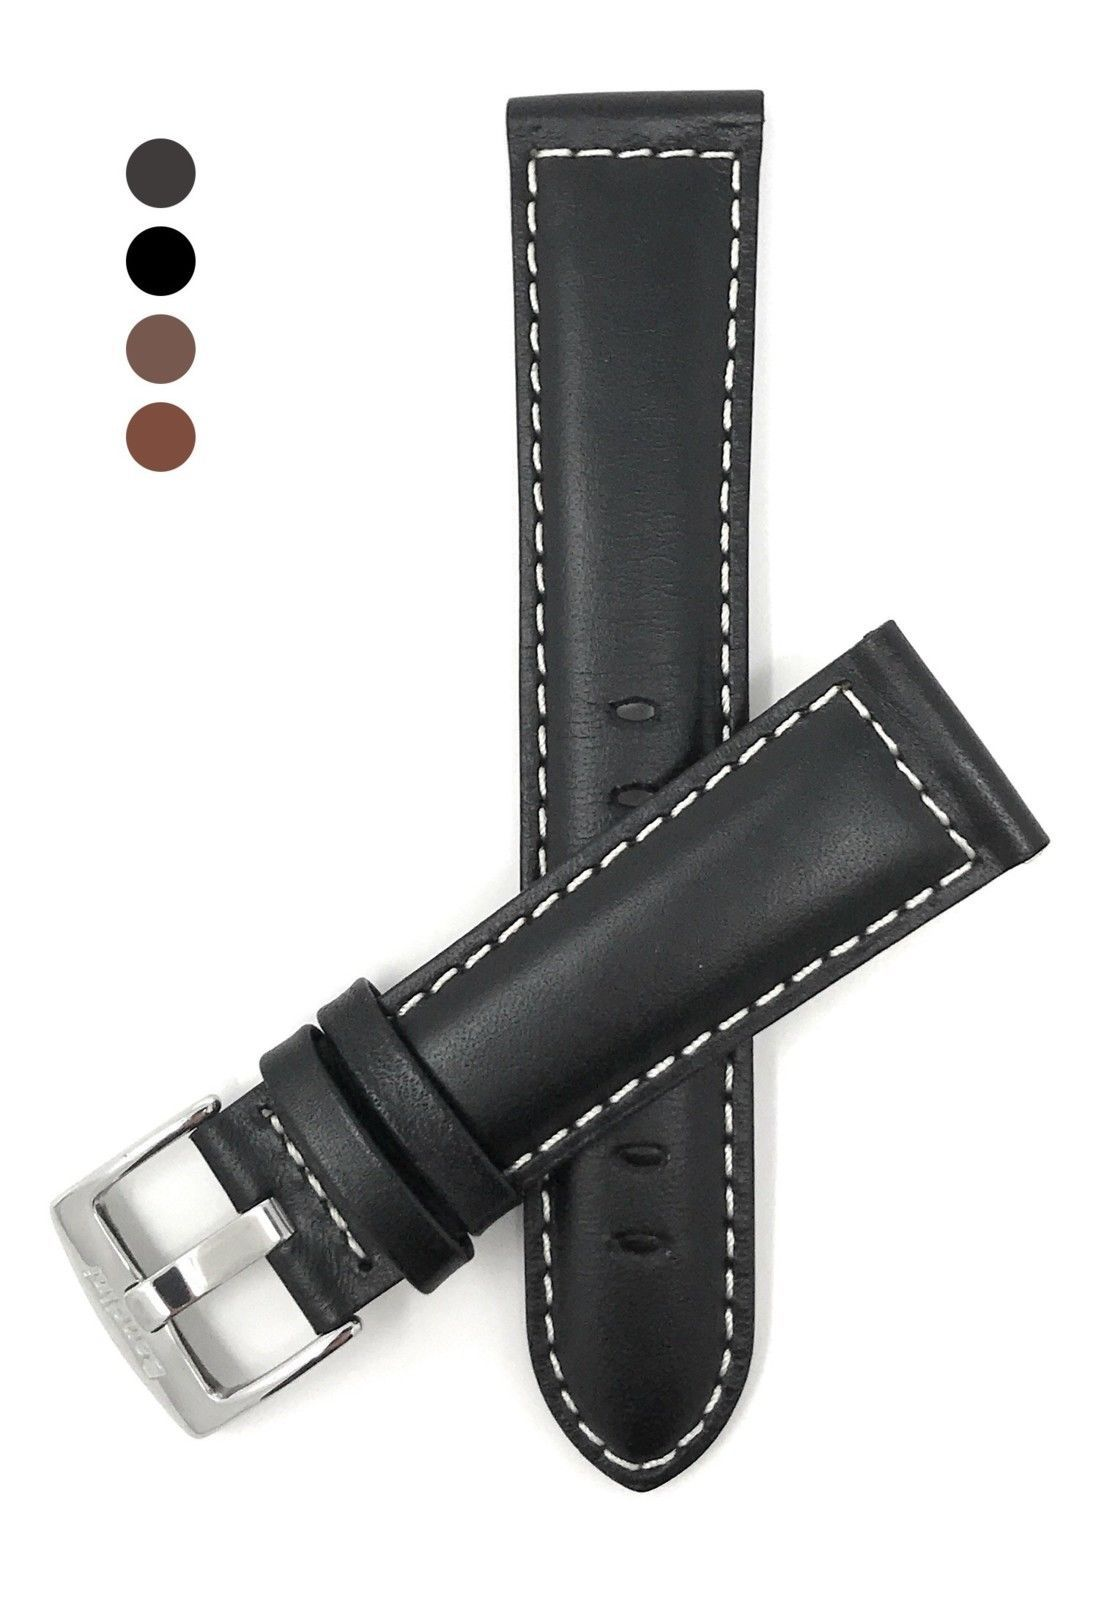 Primary image for Extra Long (XL), 22mm wide, Black Genuine Leather Watch Band Strap, Mat Finish,